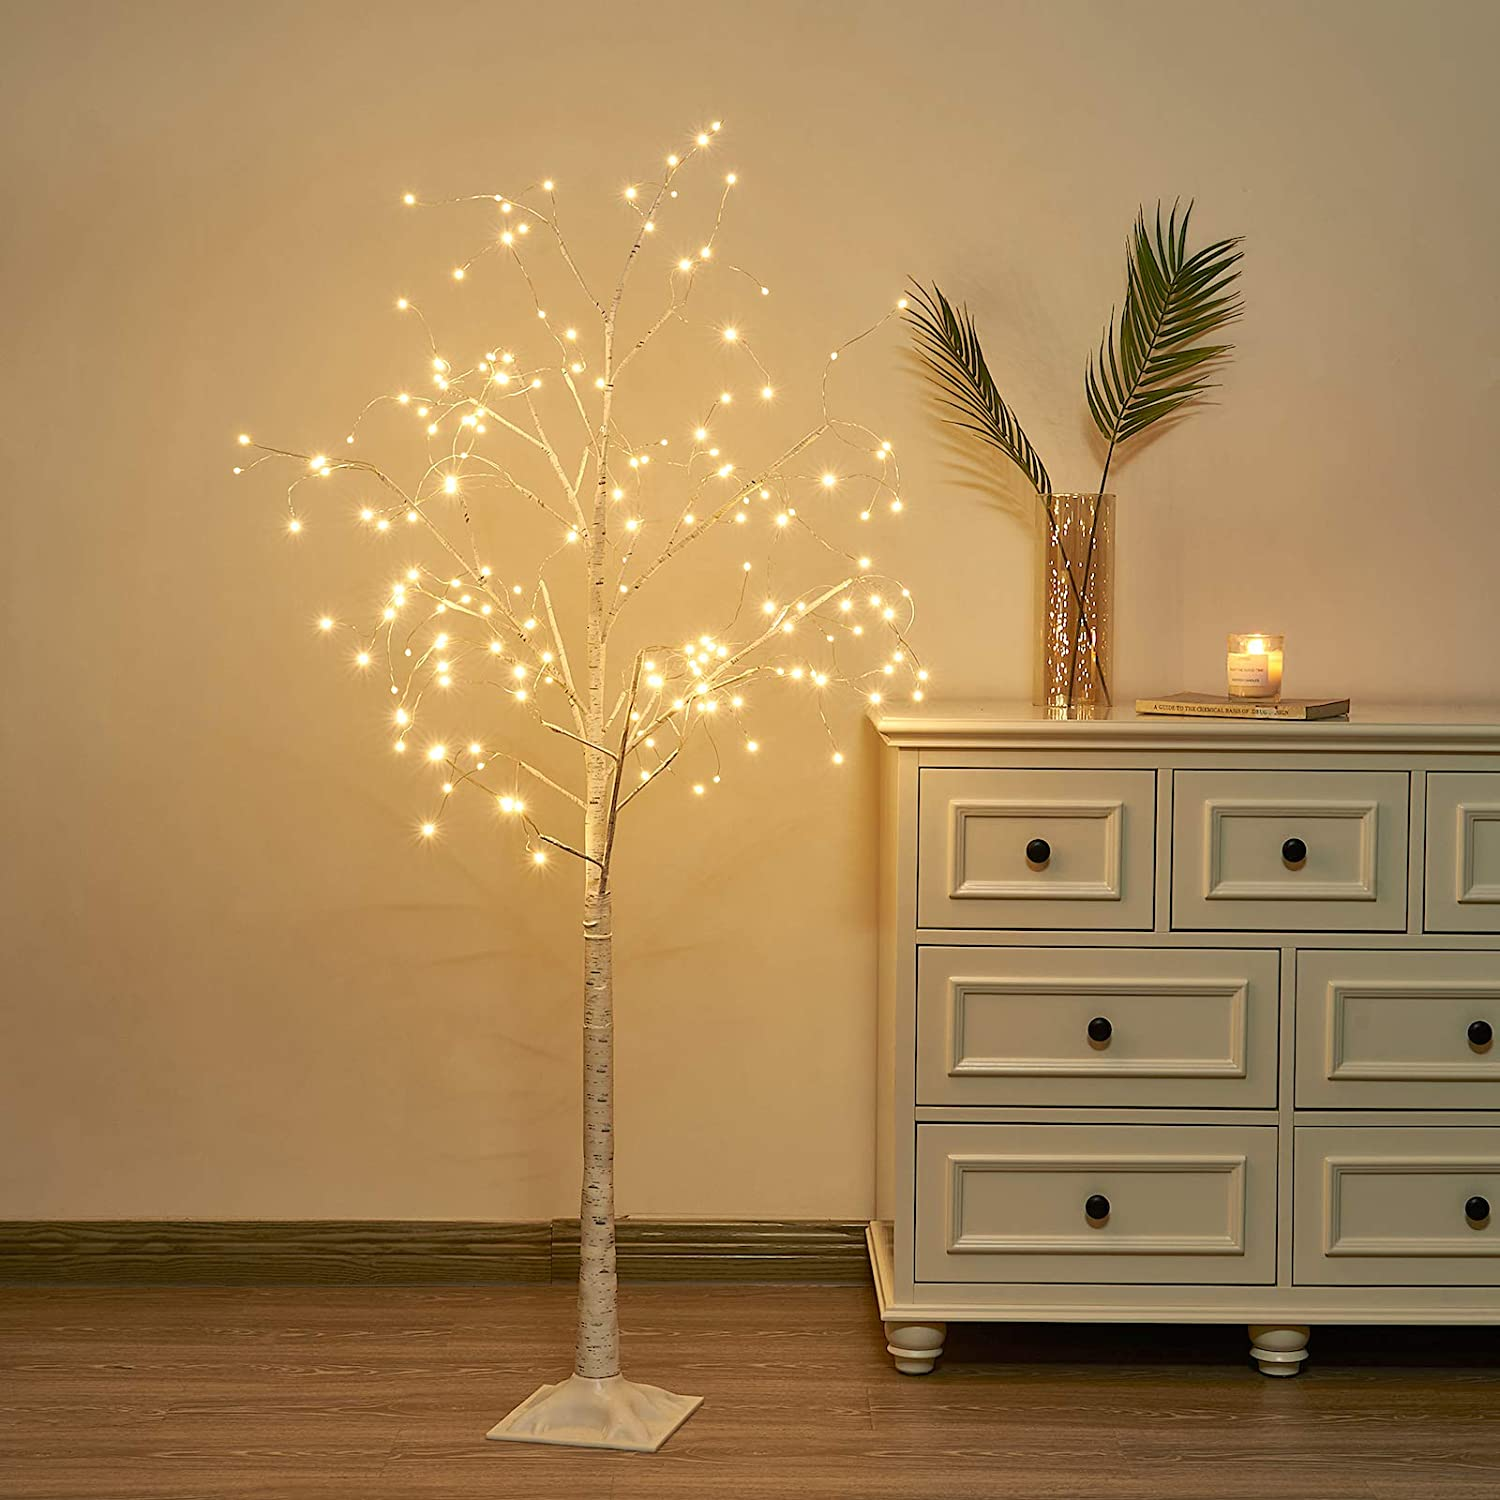 Vanthylit 5FT 168LT White Birch Tree with Fairy Lights Warm White for Indoor and Outdoor Decor